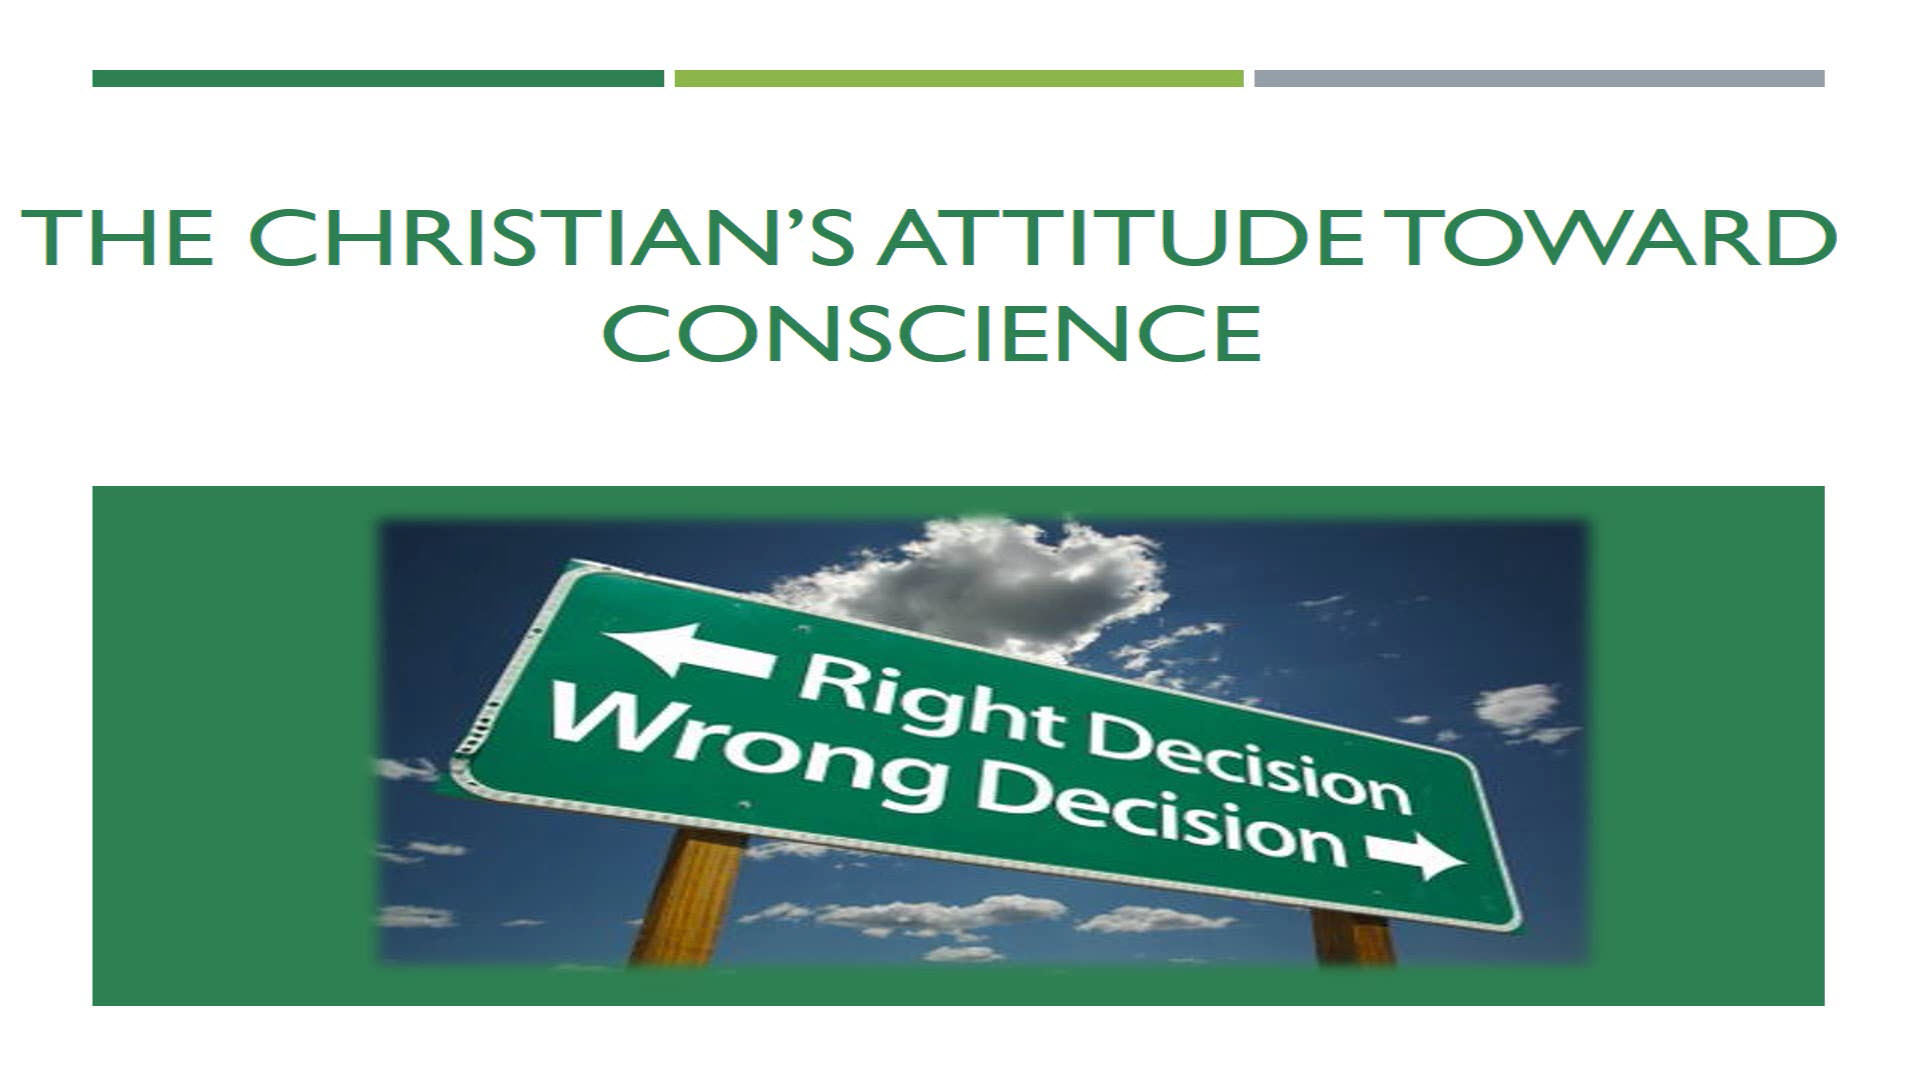 The Christian's Attitude Toward Conscience